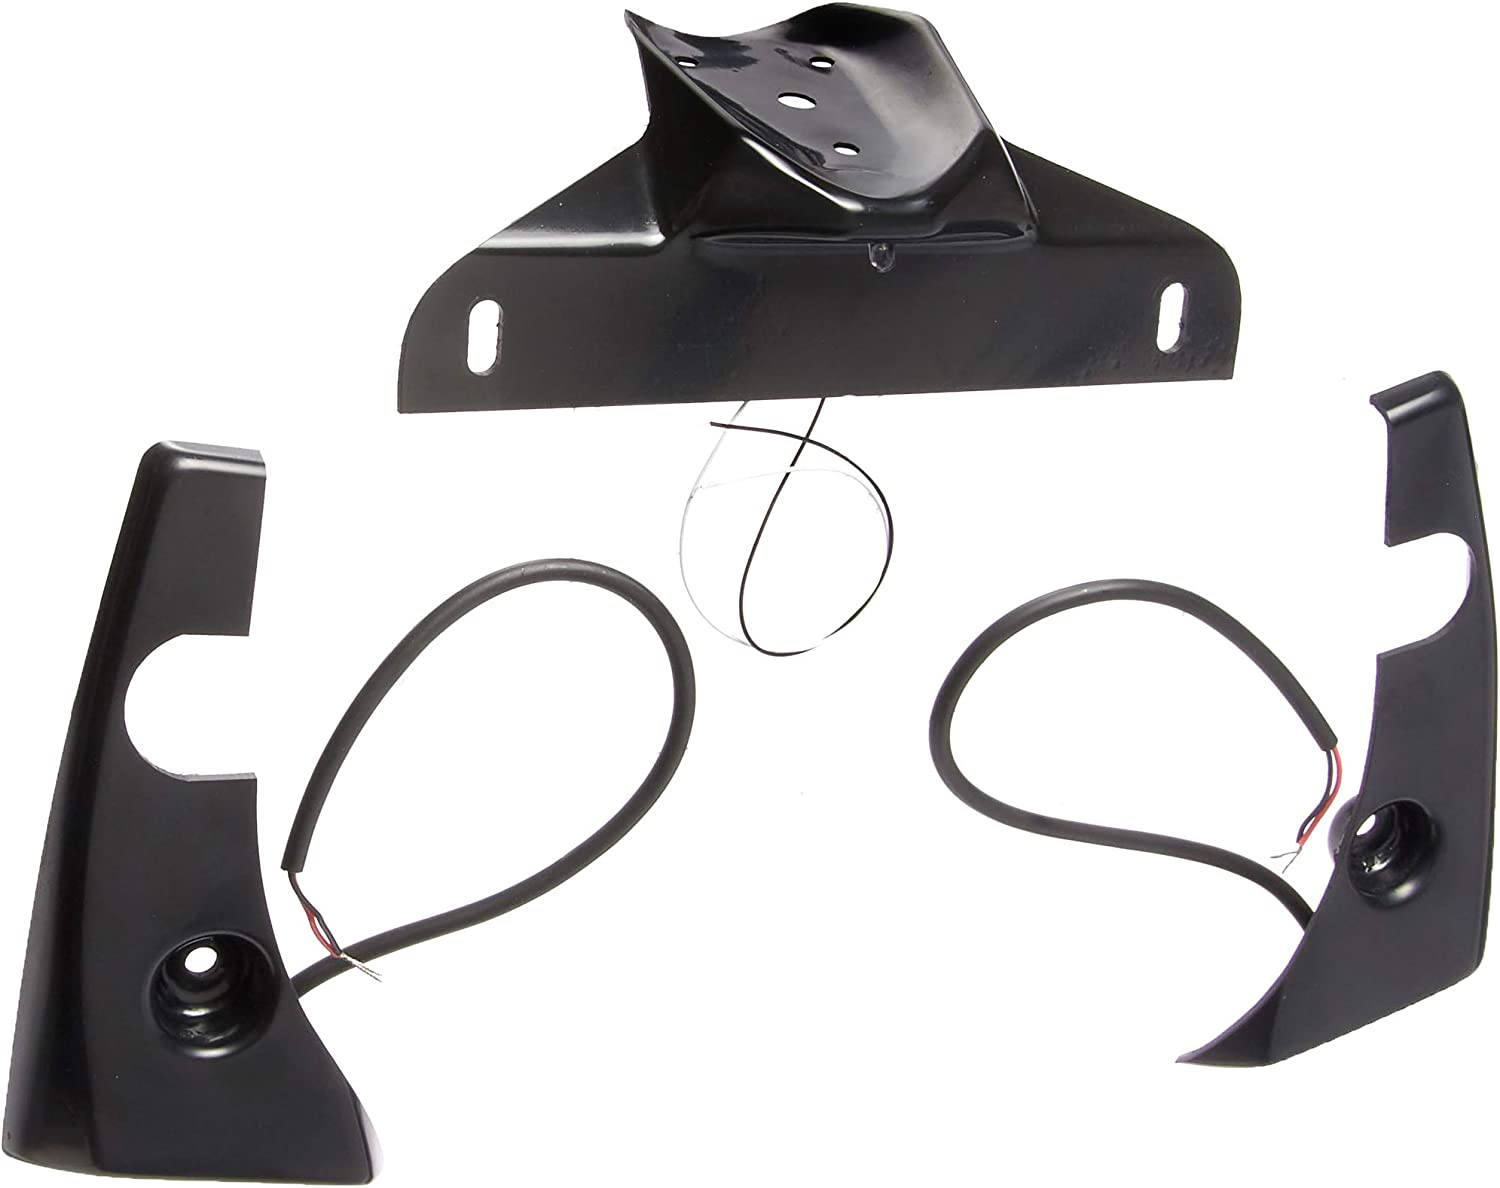 Hotbodies Racing 81501-1000 Black ABS License Plate TAG Bracket and Turn Signal Pods Kit